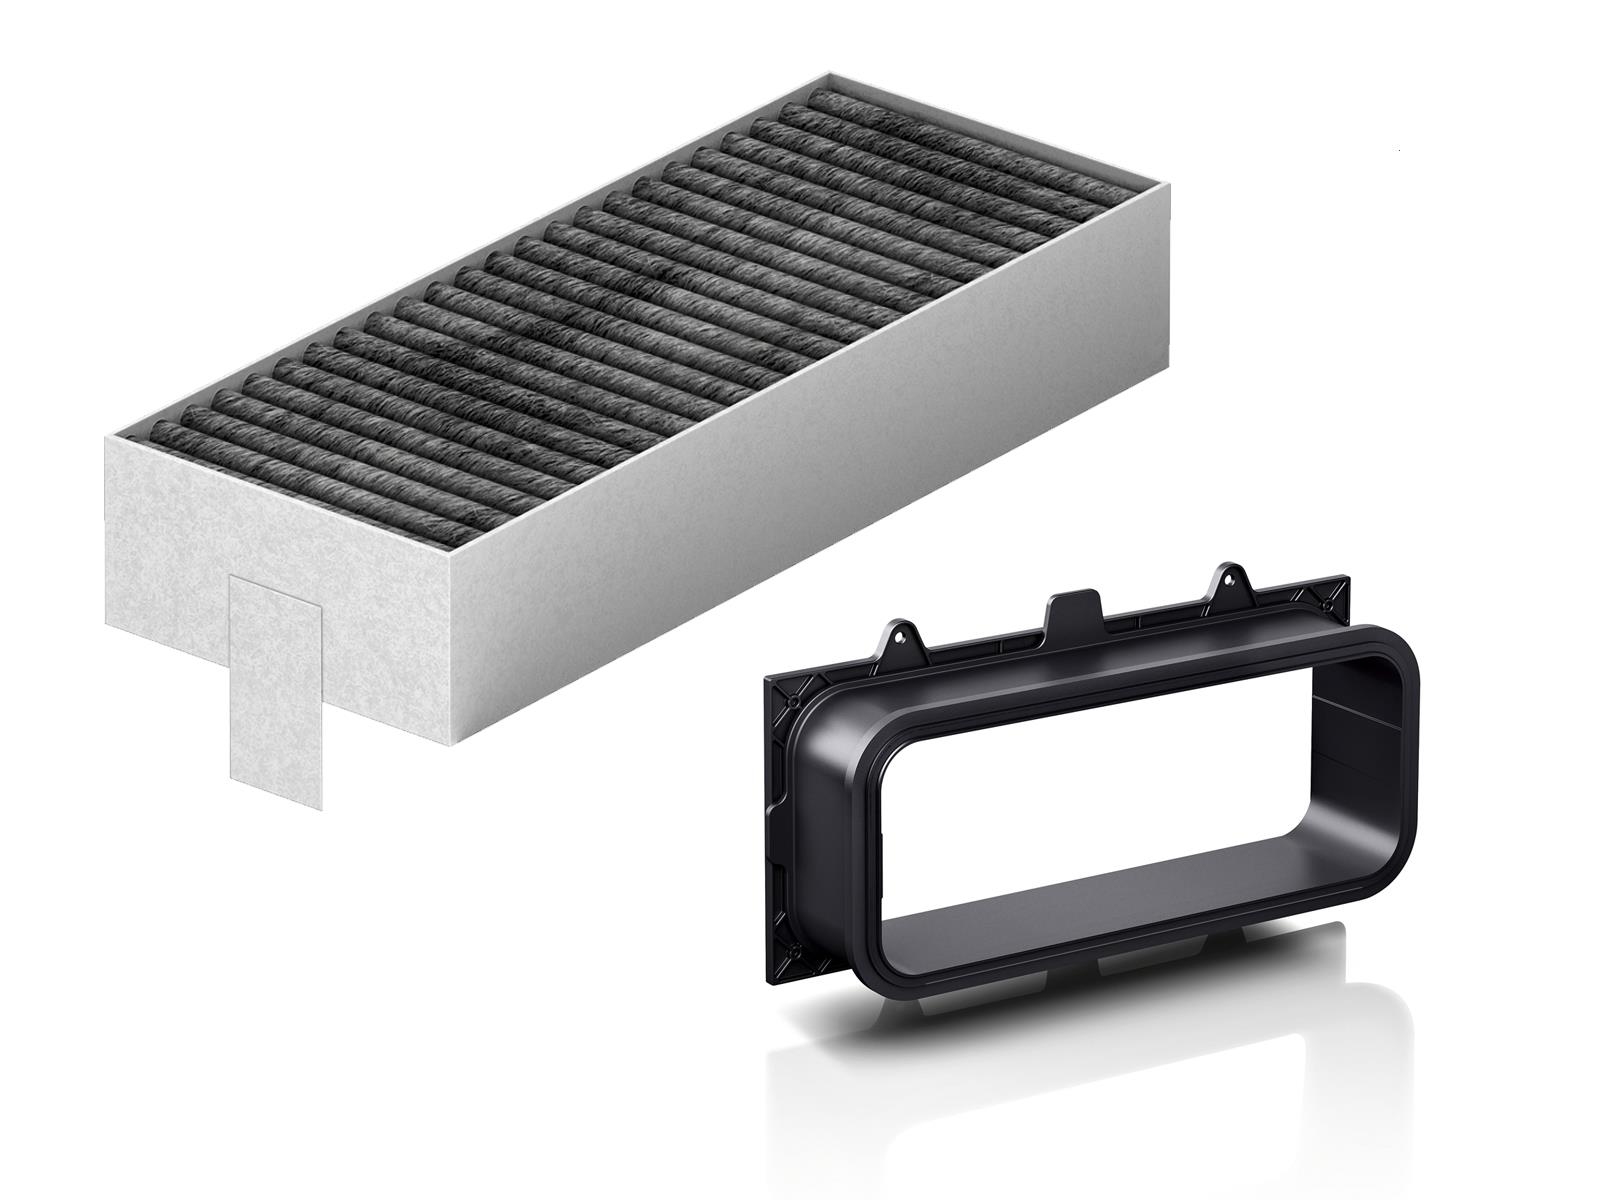 Bosch HEZ9VRUD0 Unducted Recirculation Kit suitable for ducting through back of furniture